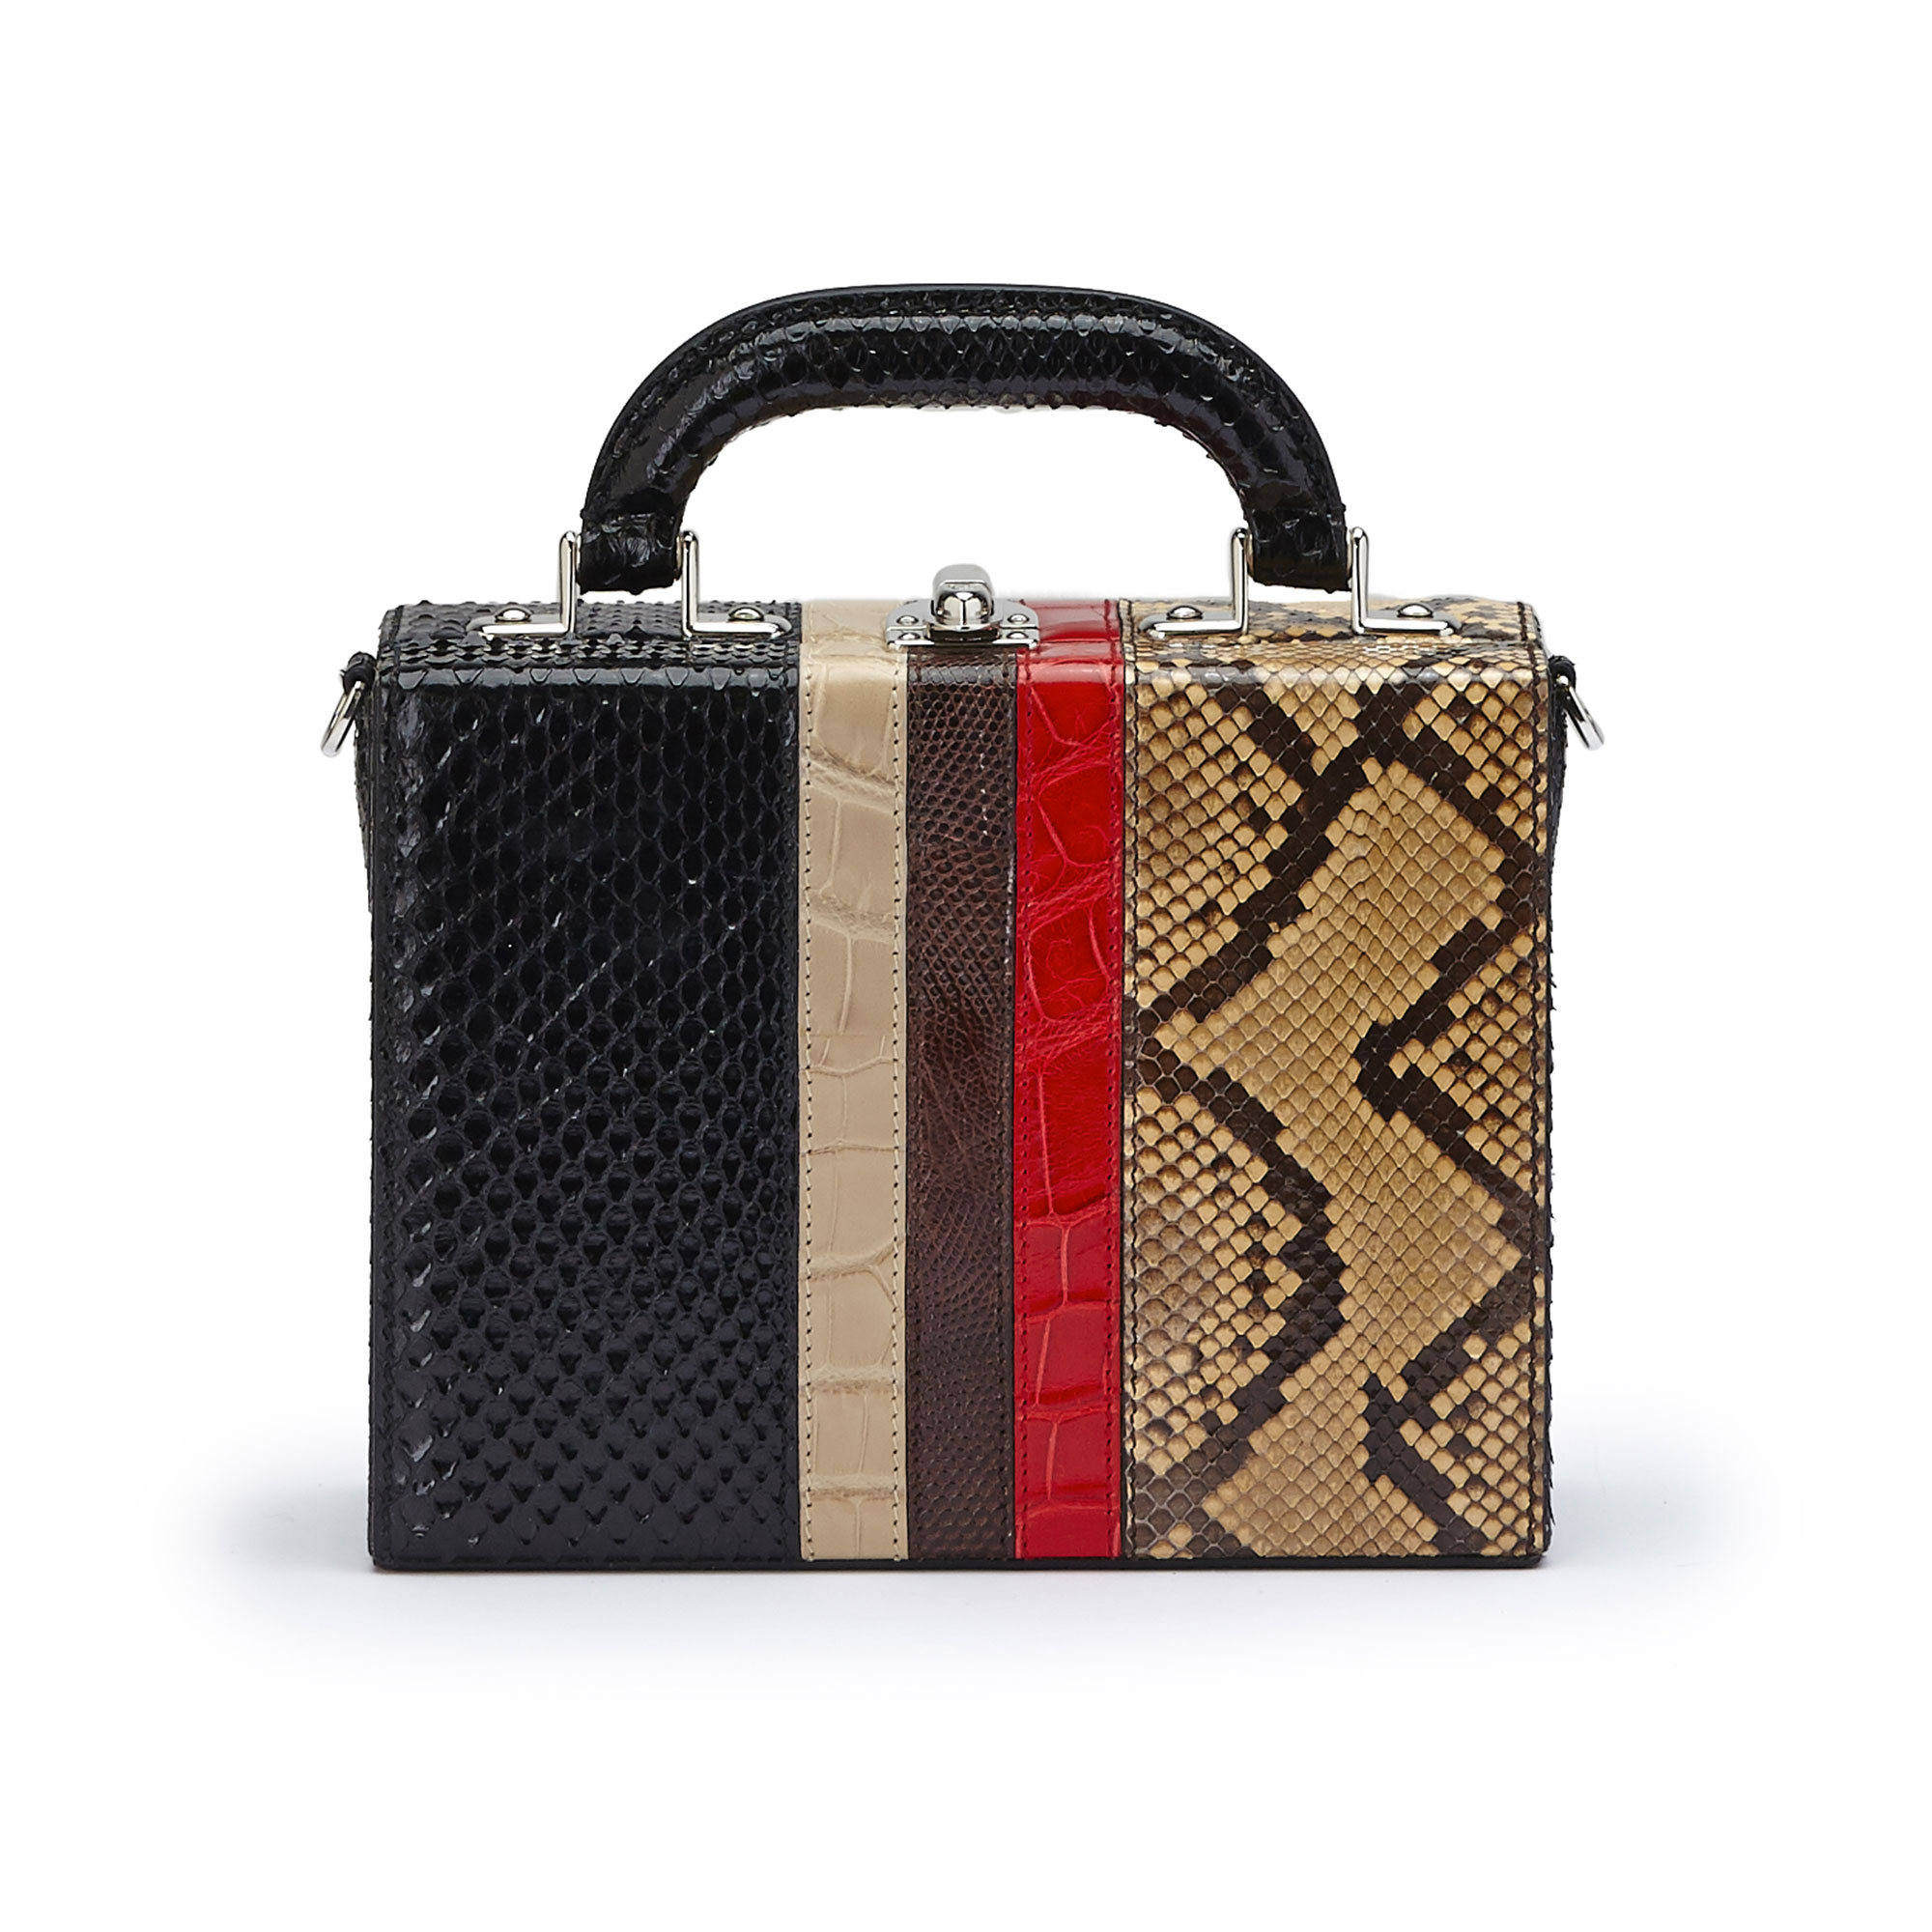 The multi material french calf, alligator, lizard, python Mini Squared Bertoncina bag by Bertoni 1949 01